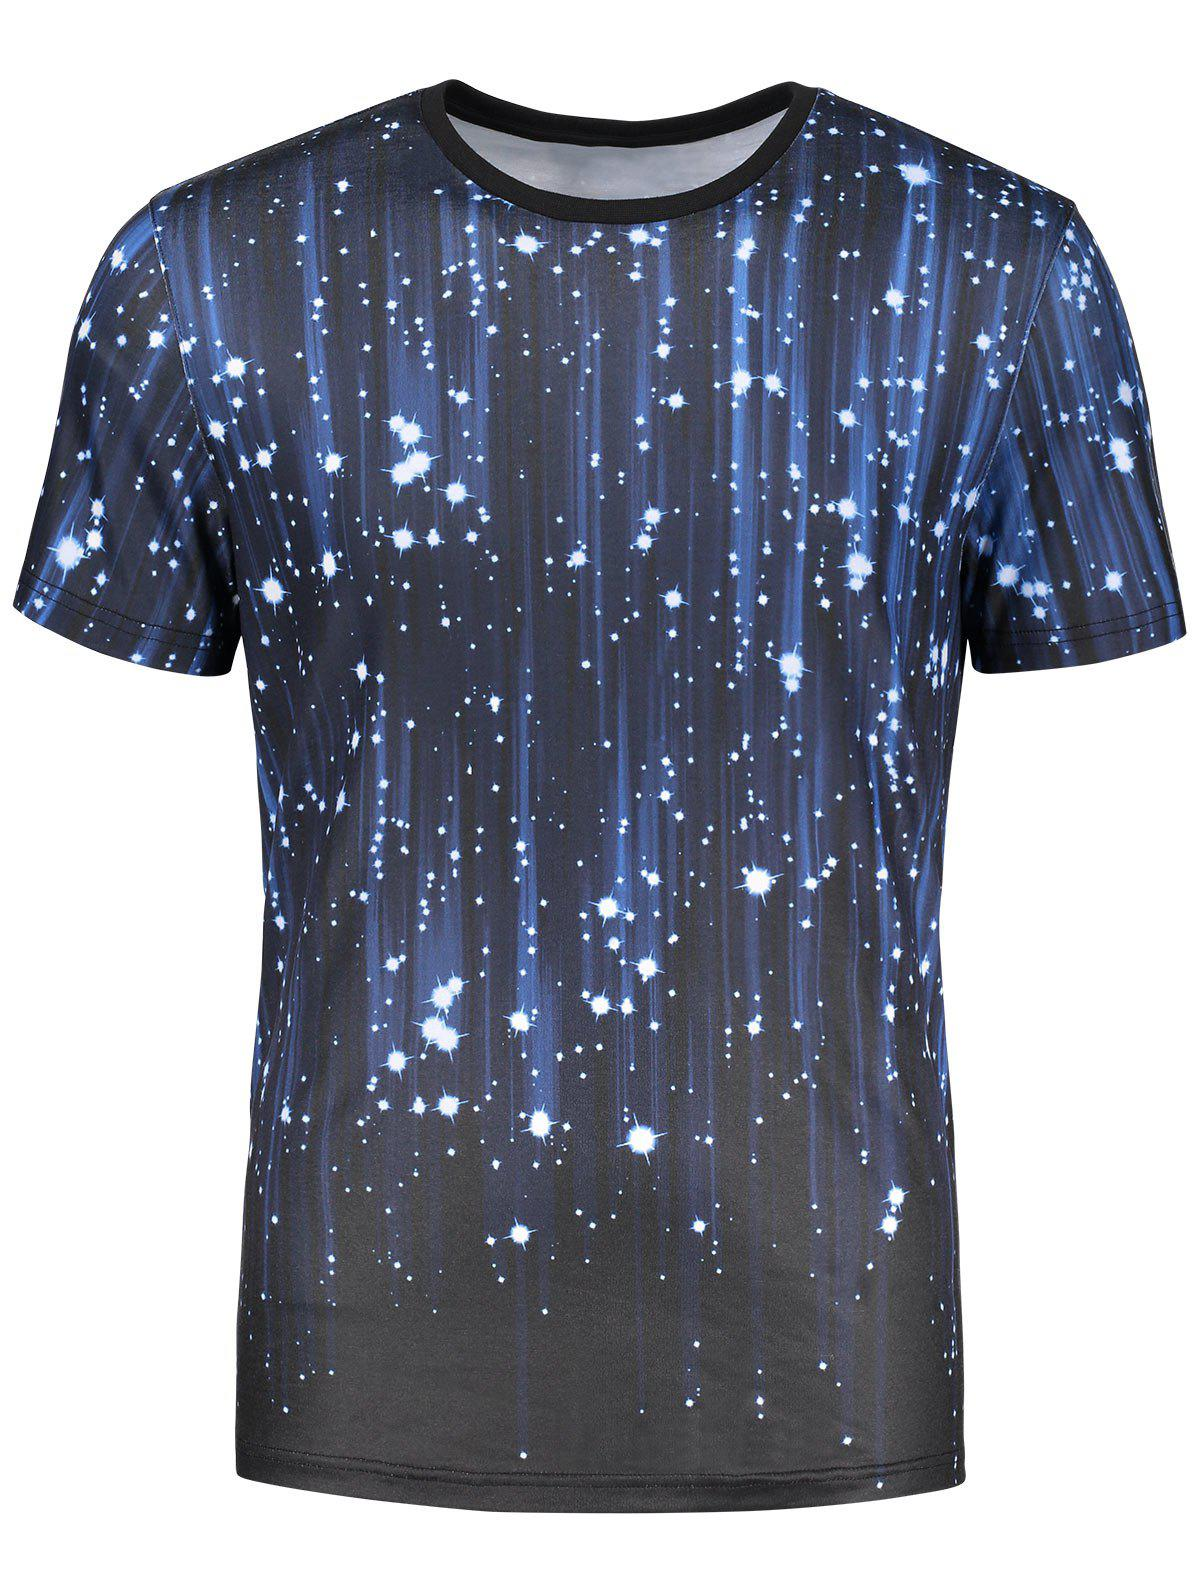 3D Galaxy Print Short Sleeve T-shirt - COLORMIX L